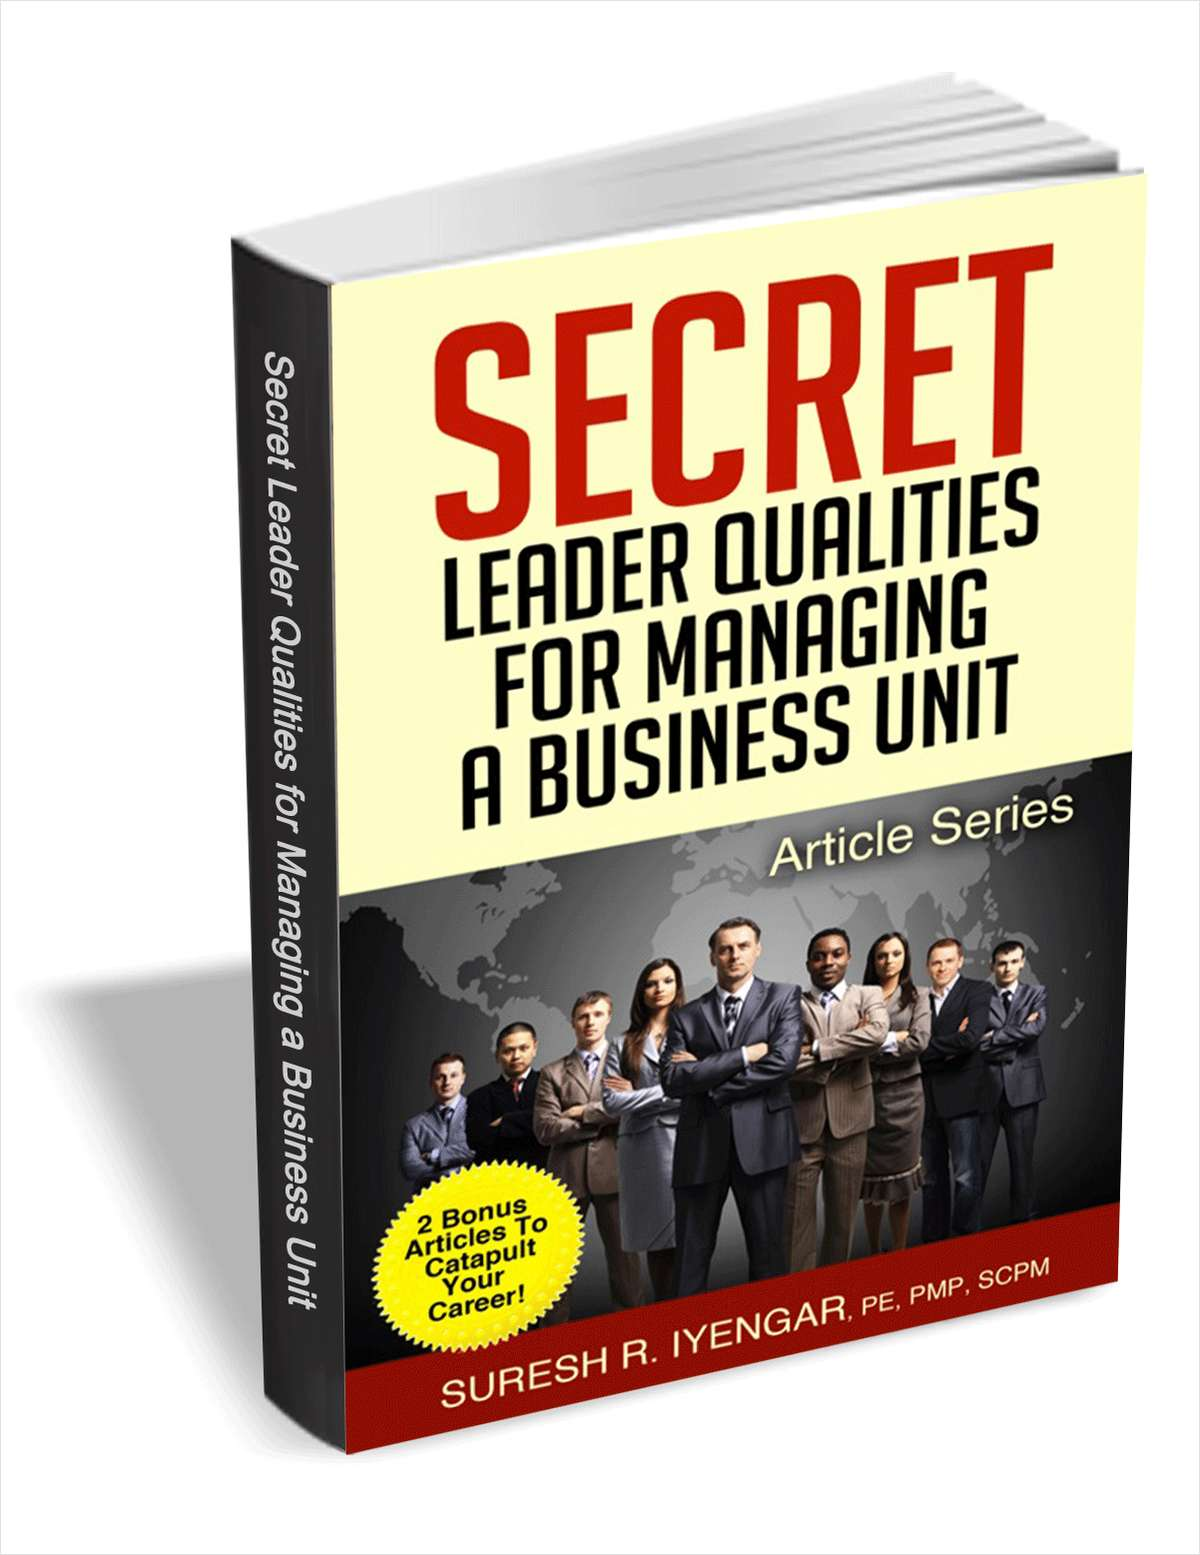 Secret Leader Qualities for Managing a Business Unit